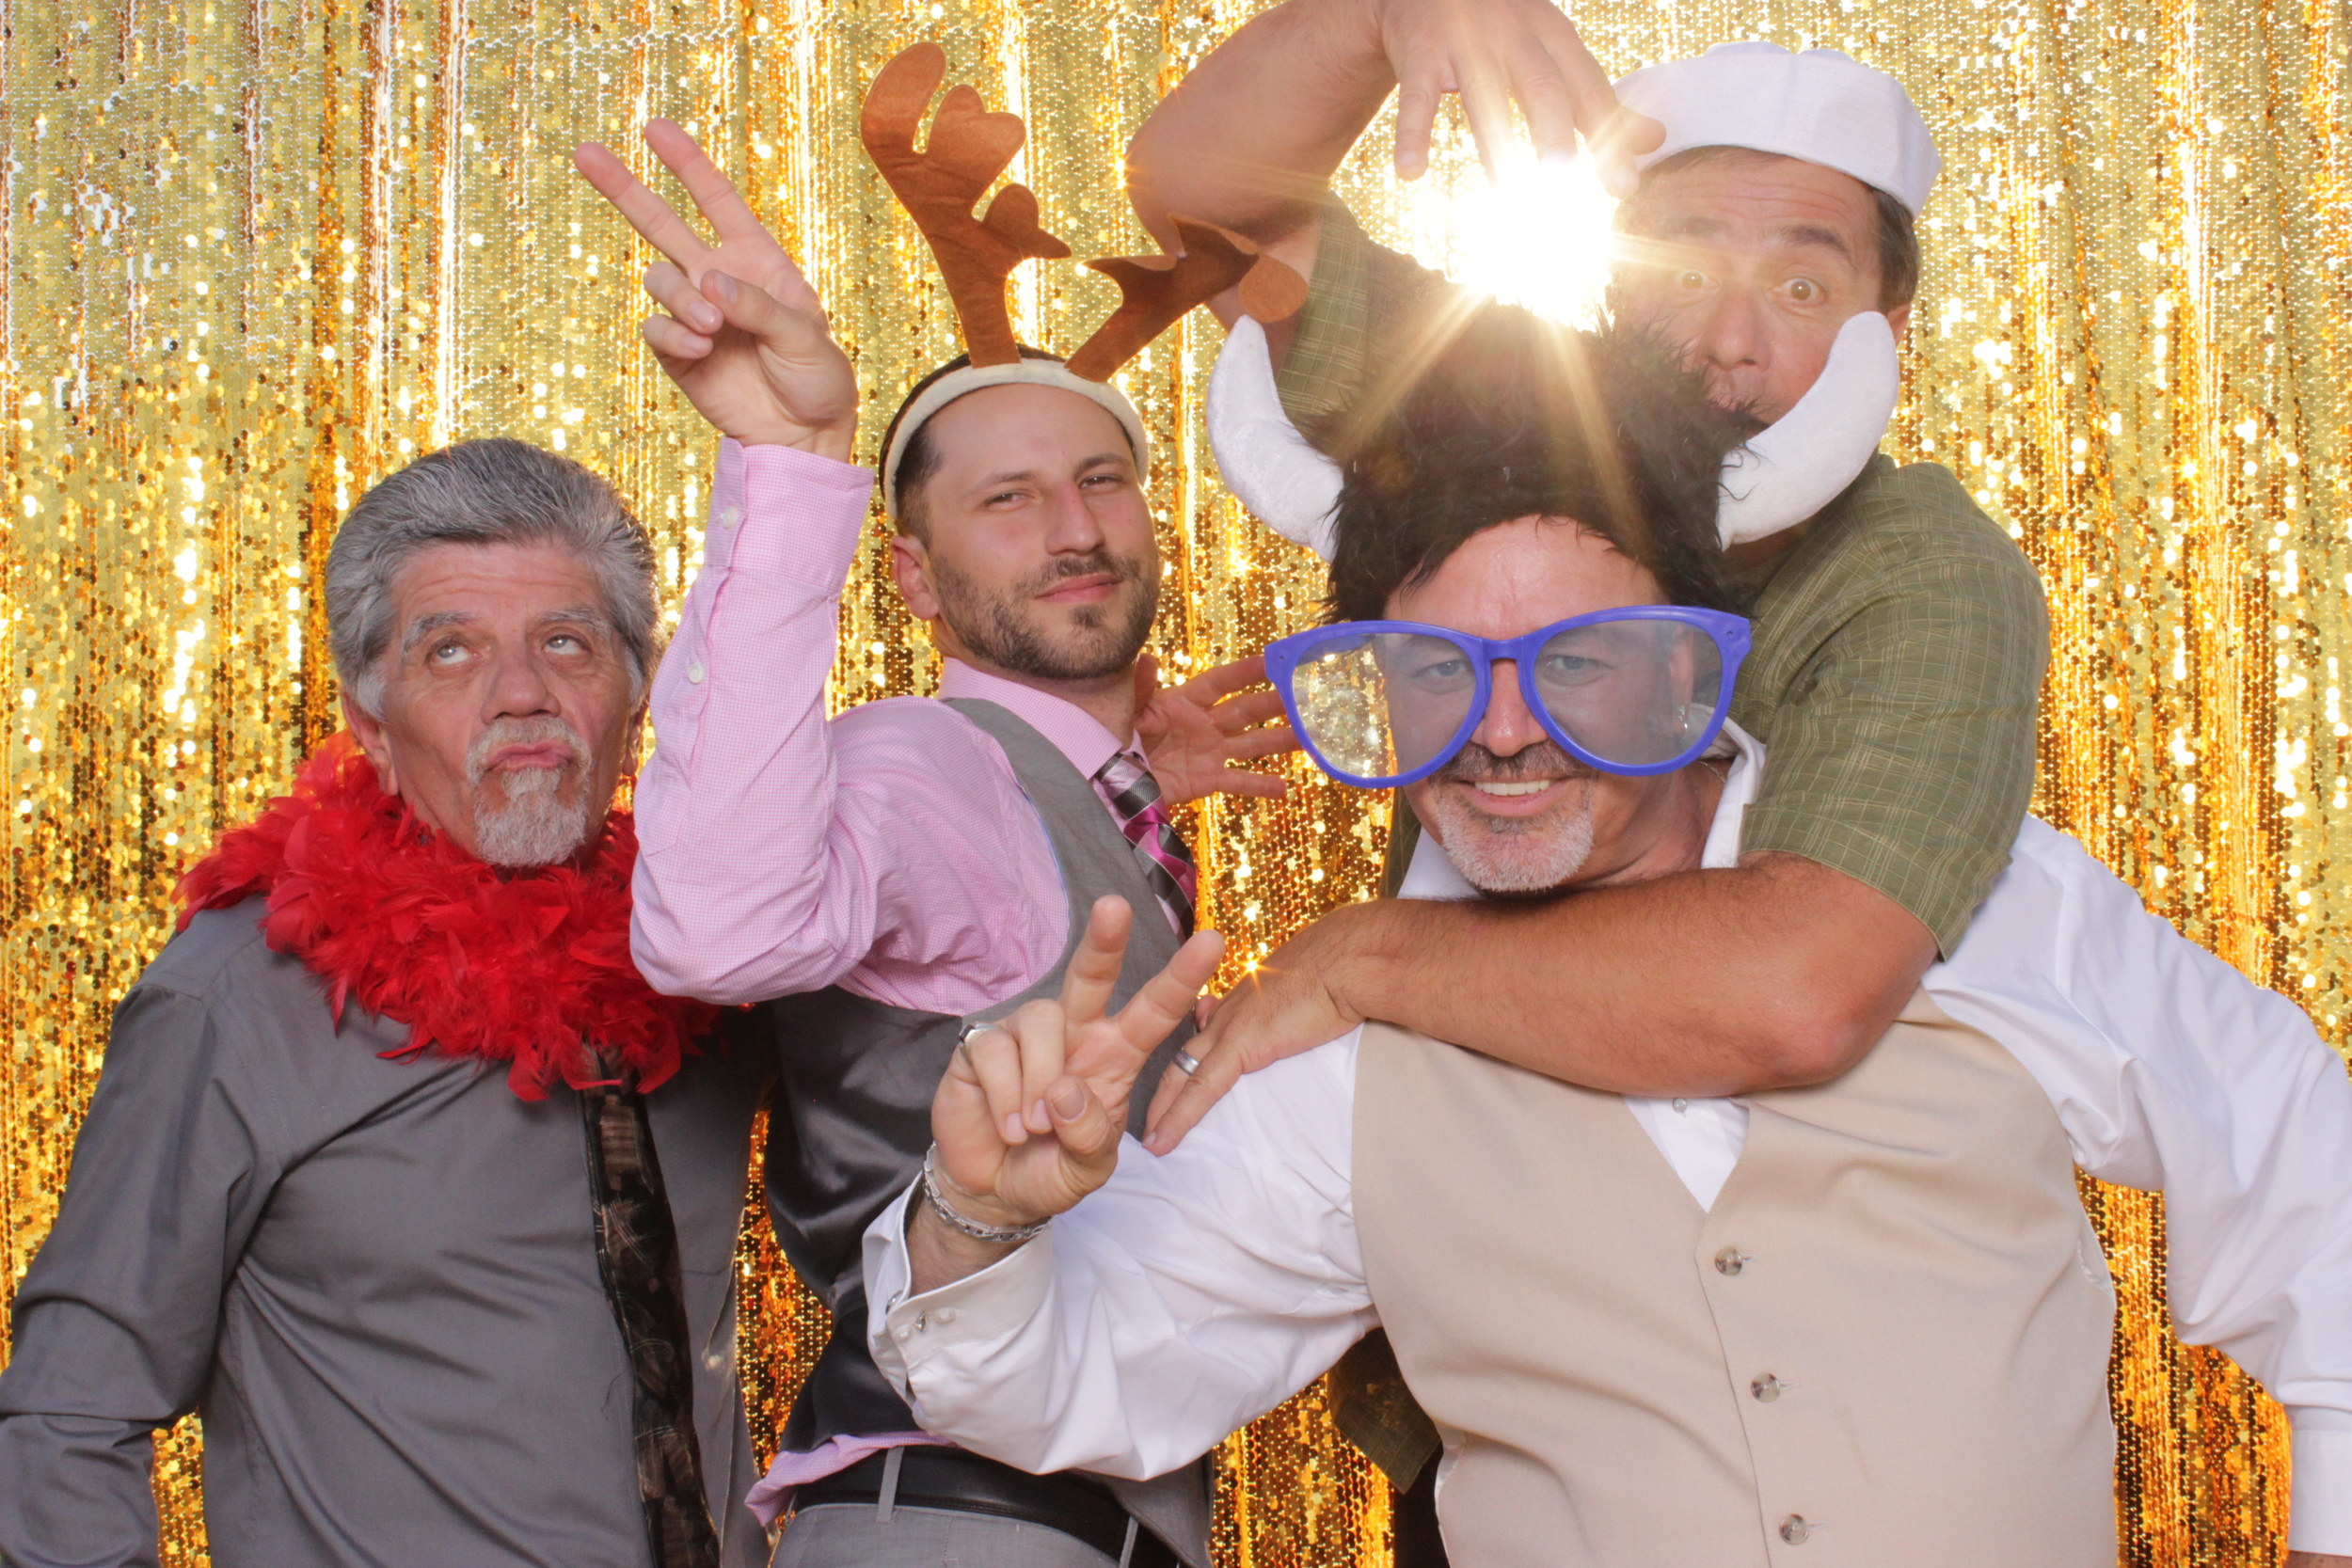 a-durham-photo-boothIMG_0038.JPG